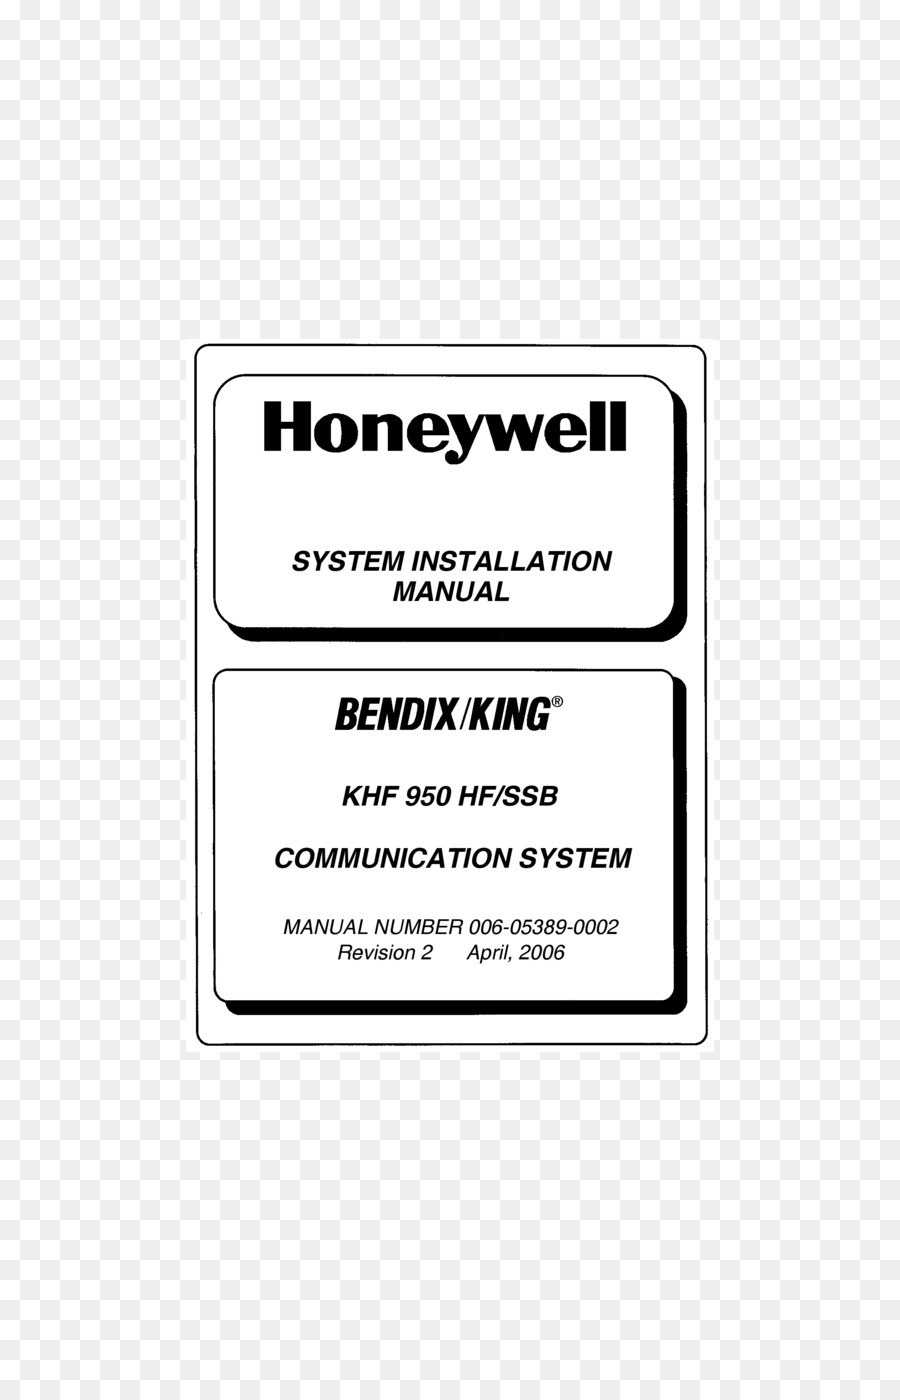 Aviation System Wiring Diagram Reveolution Of Warn Xd9000i Free Download Schematic Product Manuals Electrical Wires Cable Rh Kiss Com 12v Cabin Schematics